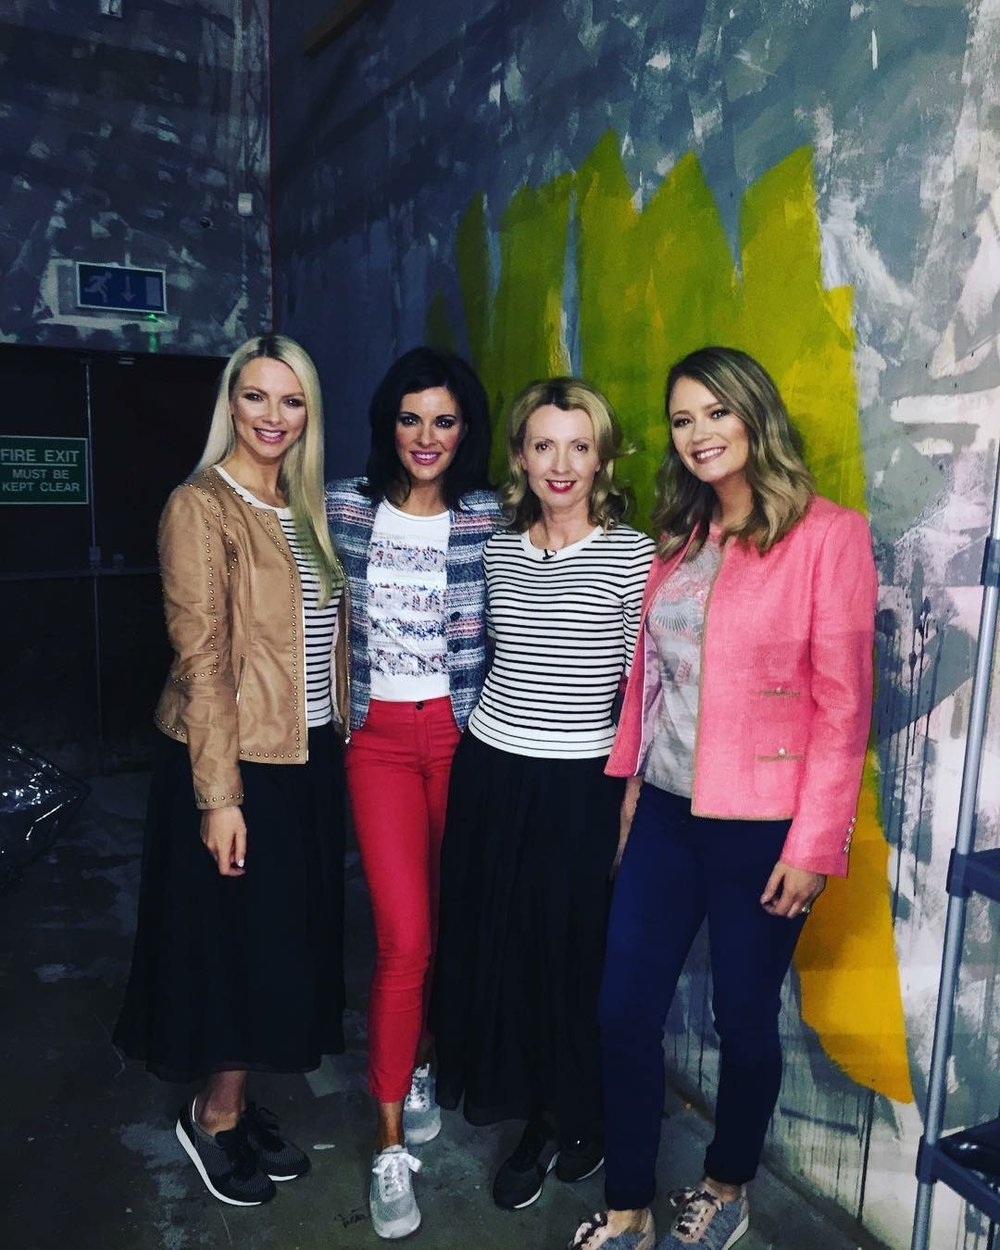 Backstage with models Maeve, Jen and Aisling at RTE Today. All footwear by Ara Shoes and all clothes from Hannons of Castleisland.